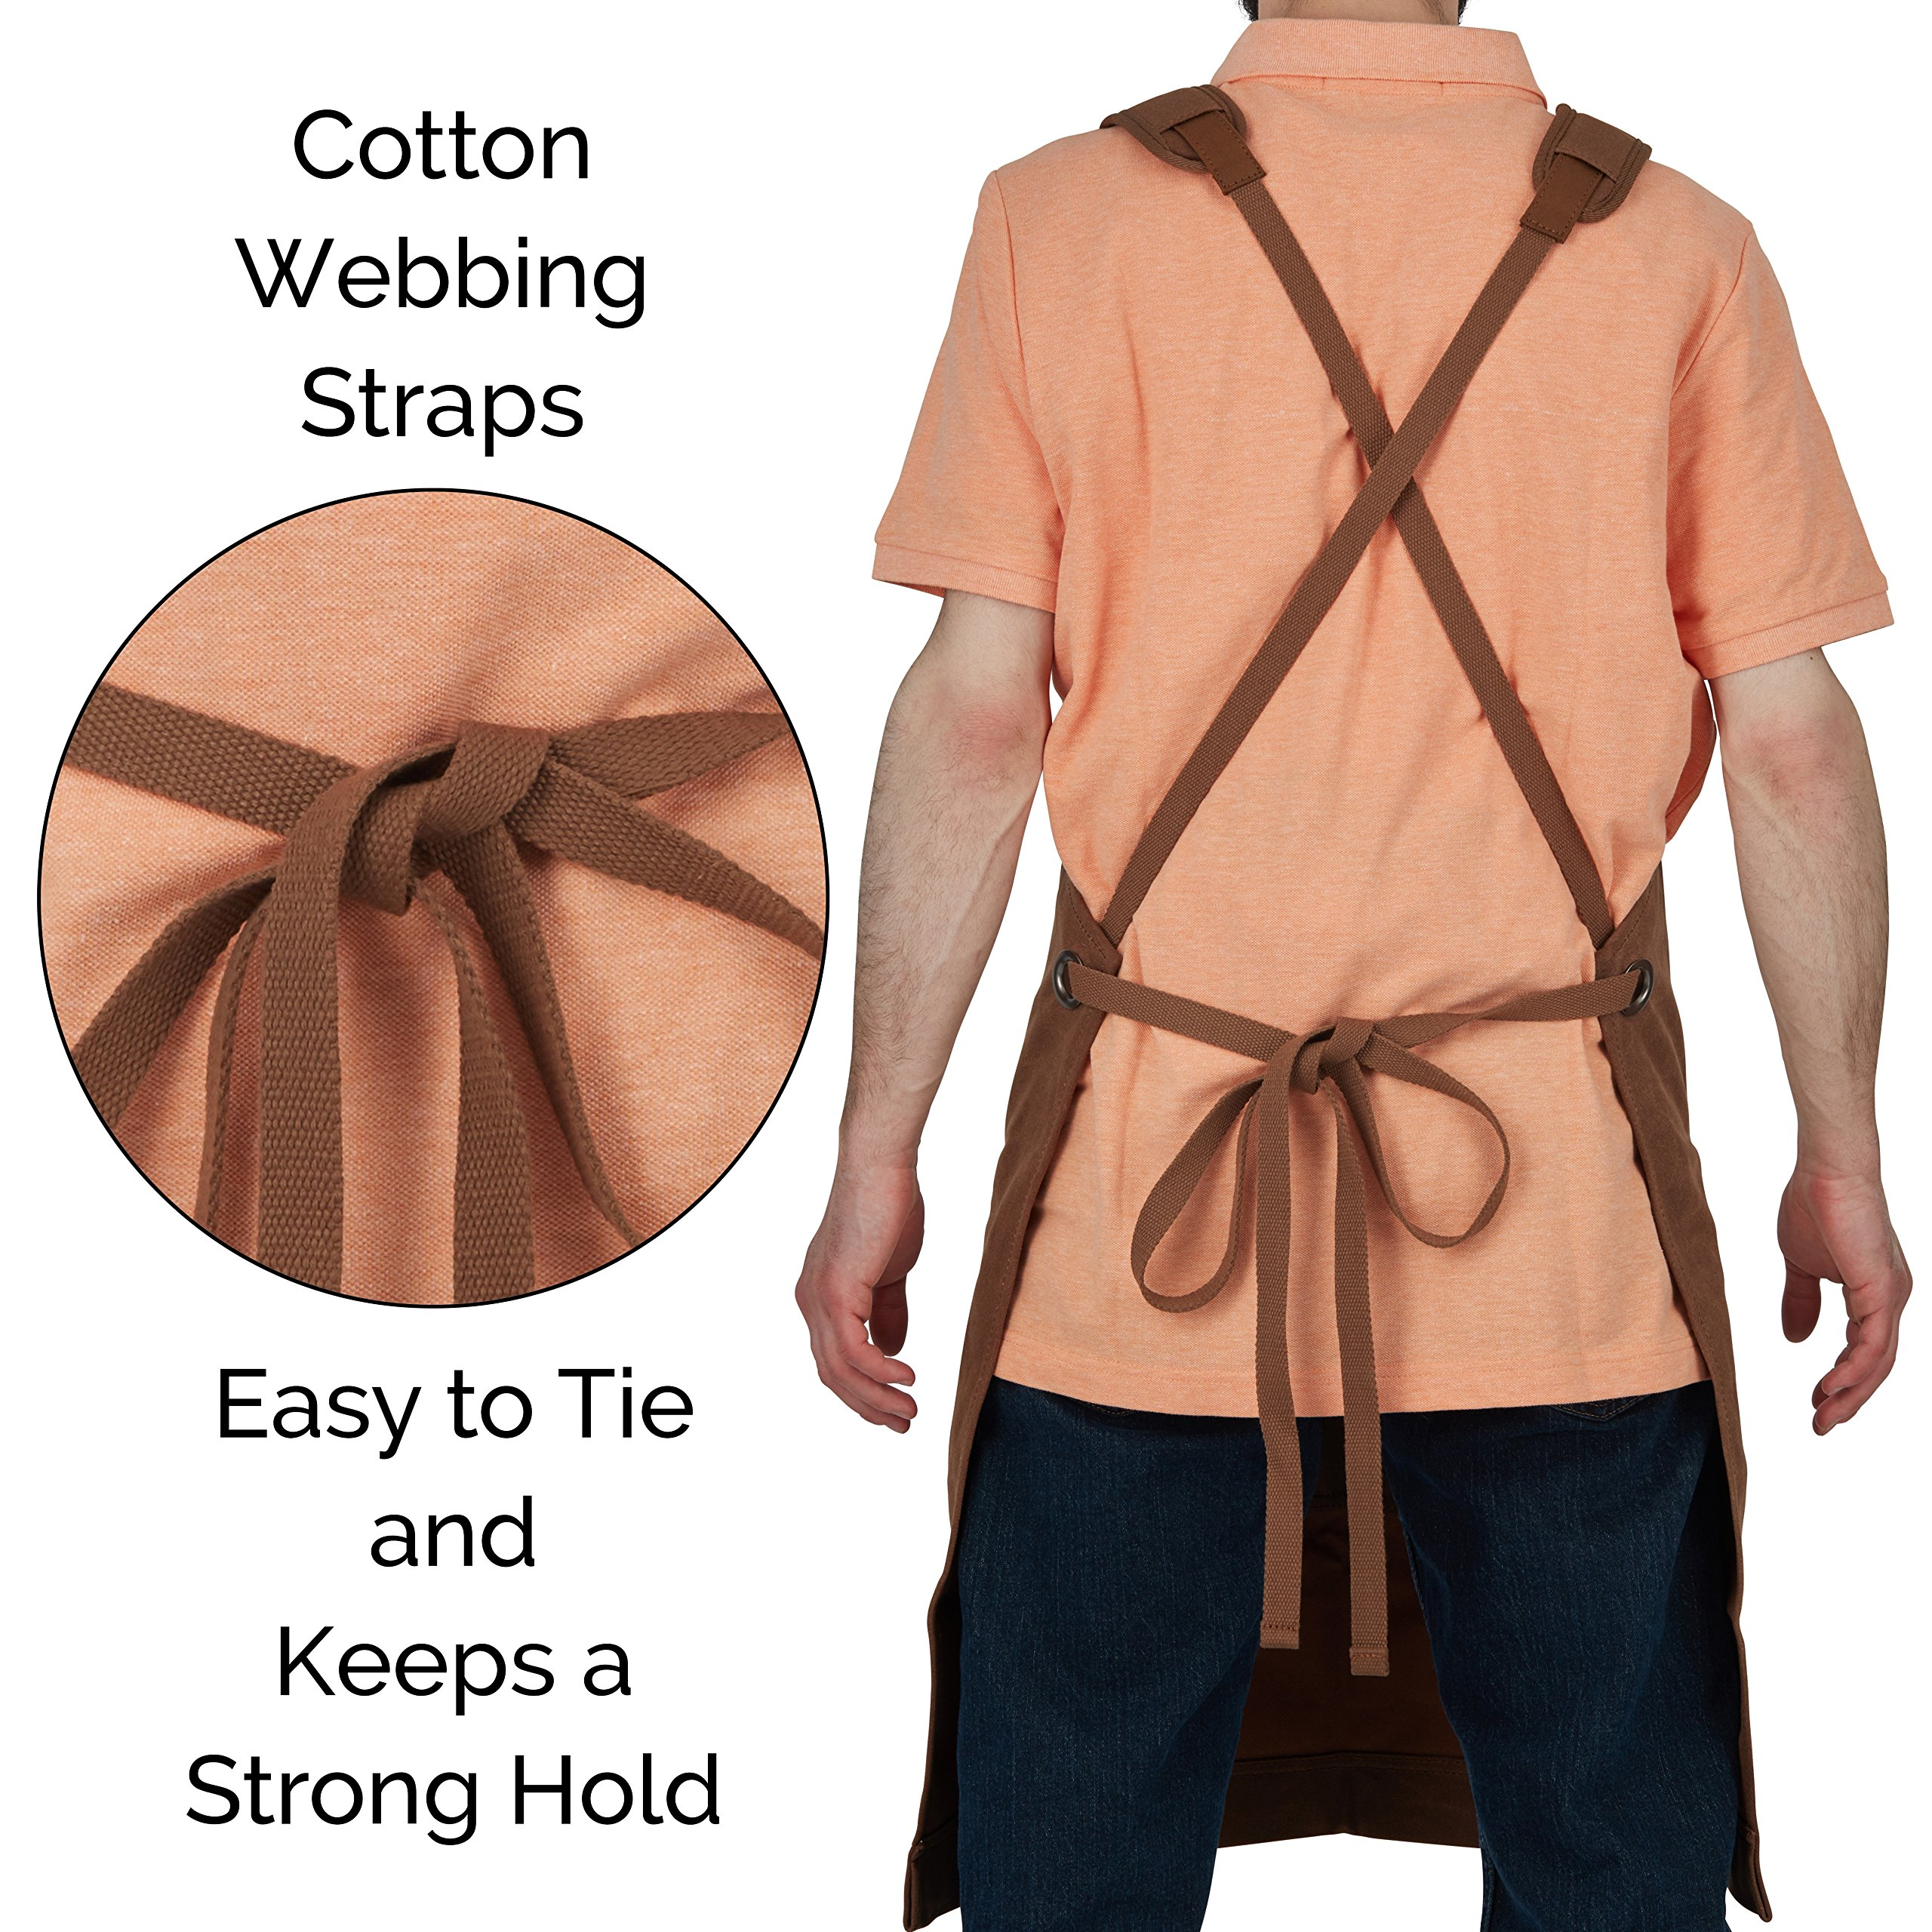 Heavy-Duty Waxed-Canvas Work Apron for Men and Women with Pockets for Tools Cross-Back Straps  – Adjustable from M to XXL (Brown) by Premium Rhino (Image #6)